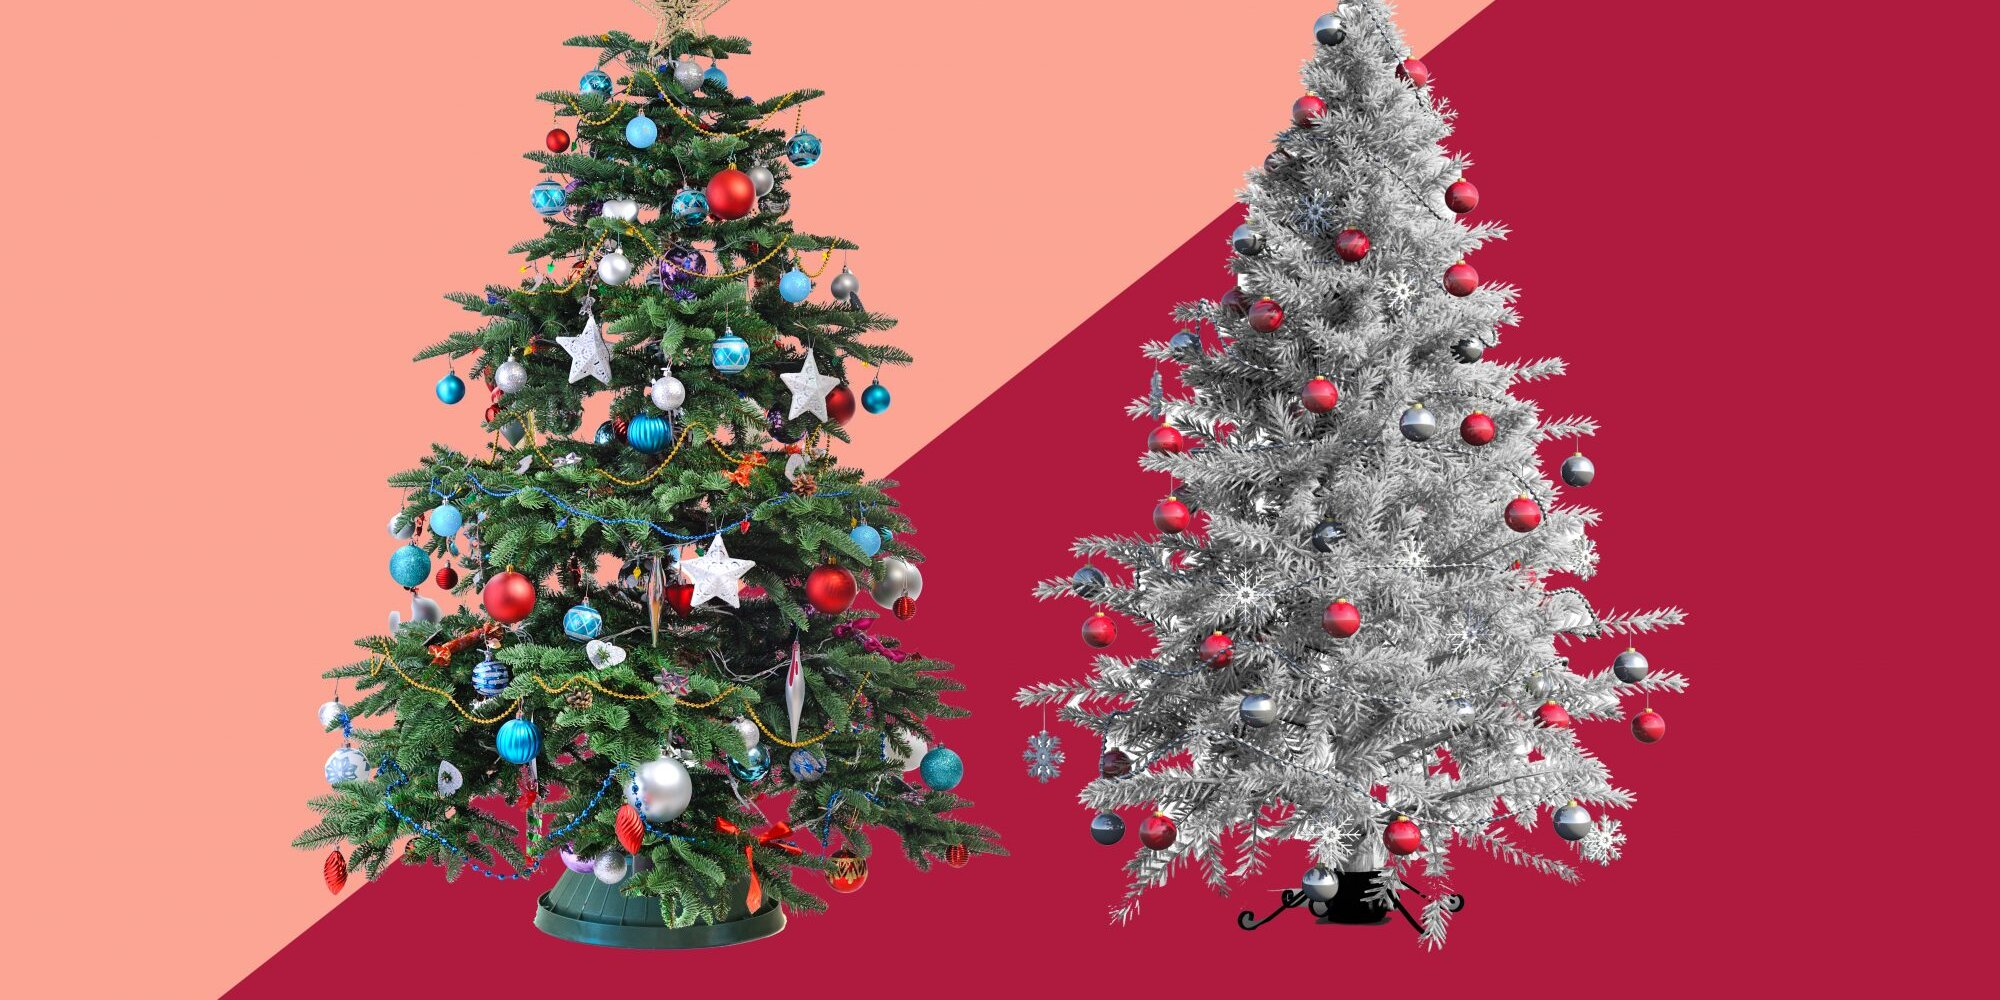 Most Realistic Artificial Christmas Trees 2021 Pros And Cons Of A Real Christmas Tree Vs Artificial Christmas Tree Real Simple